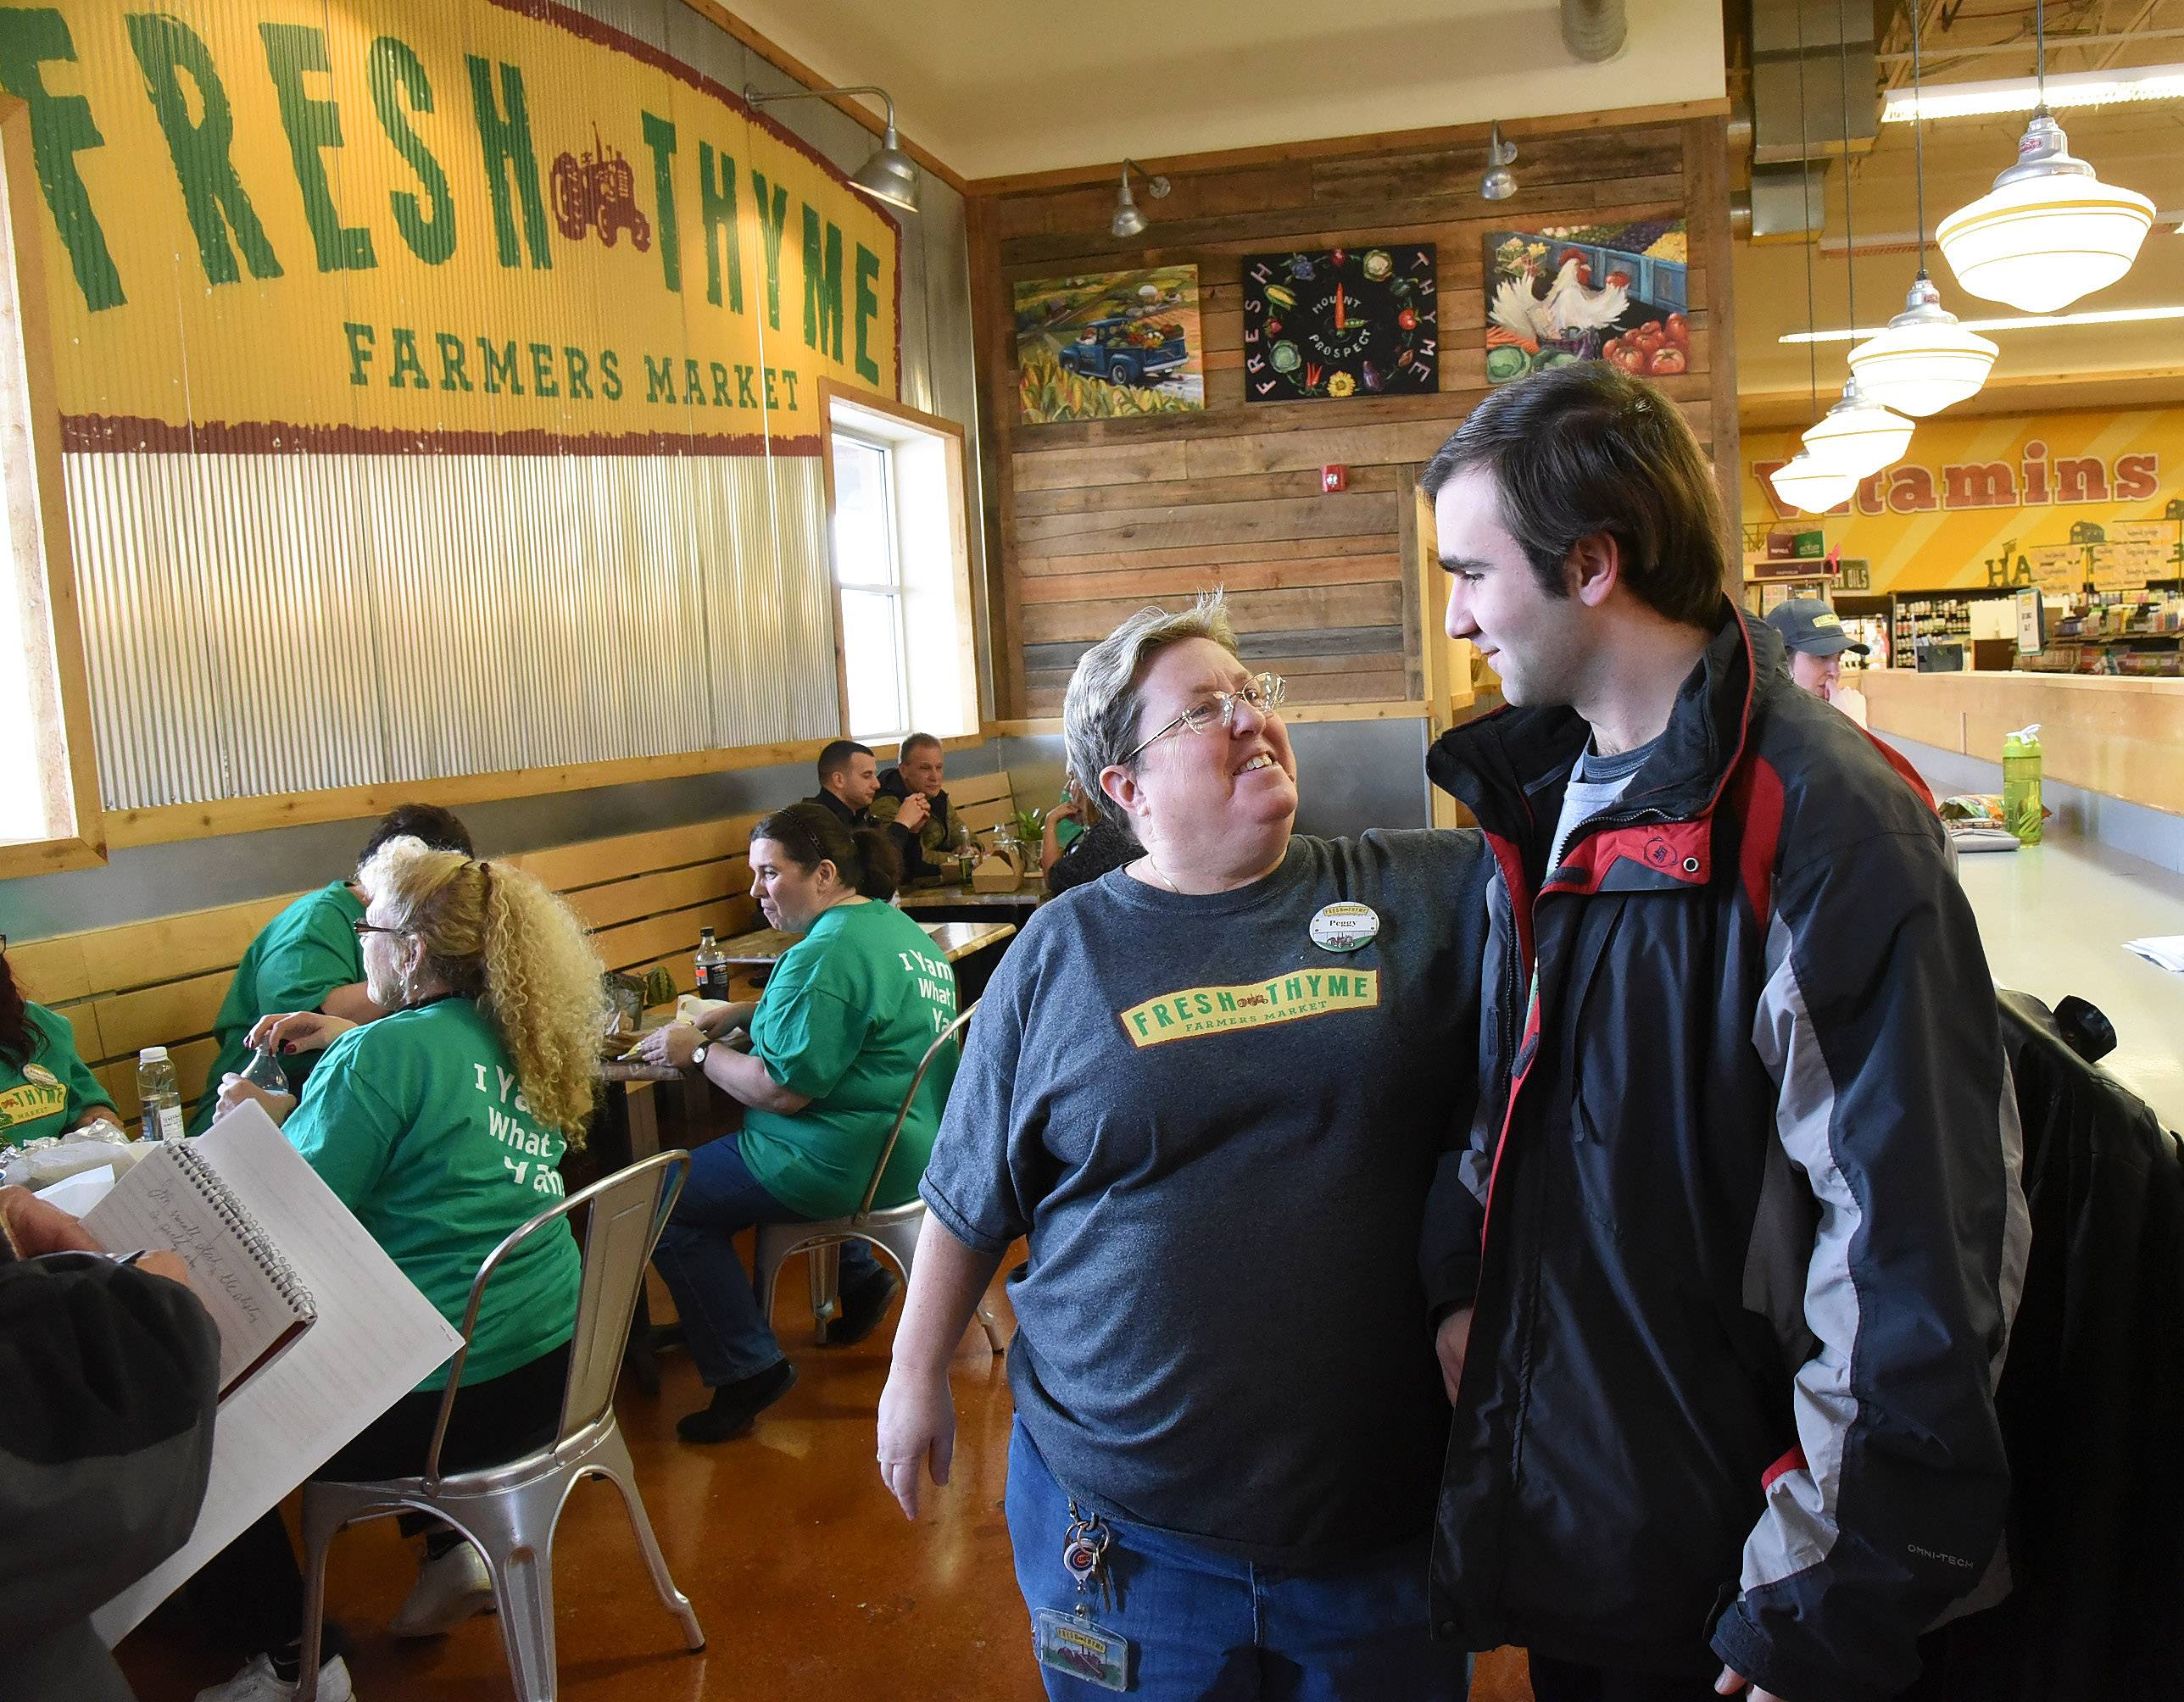 Once resistant to change and meeting new people as a result of his autism, Ben Nicholas has improved his social skills and made friends at the Fresh Thyme Farmers Market in Mount Prospect. Ready to move on to a career in manufacturing, he shares a moment with Peggy Doyle, a manager at the store, on his 22nd birthday.